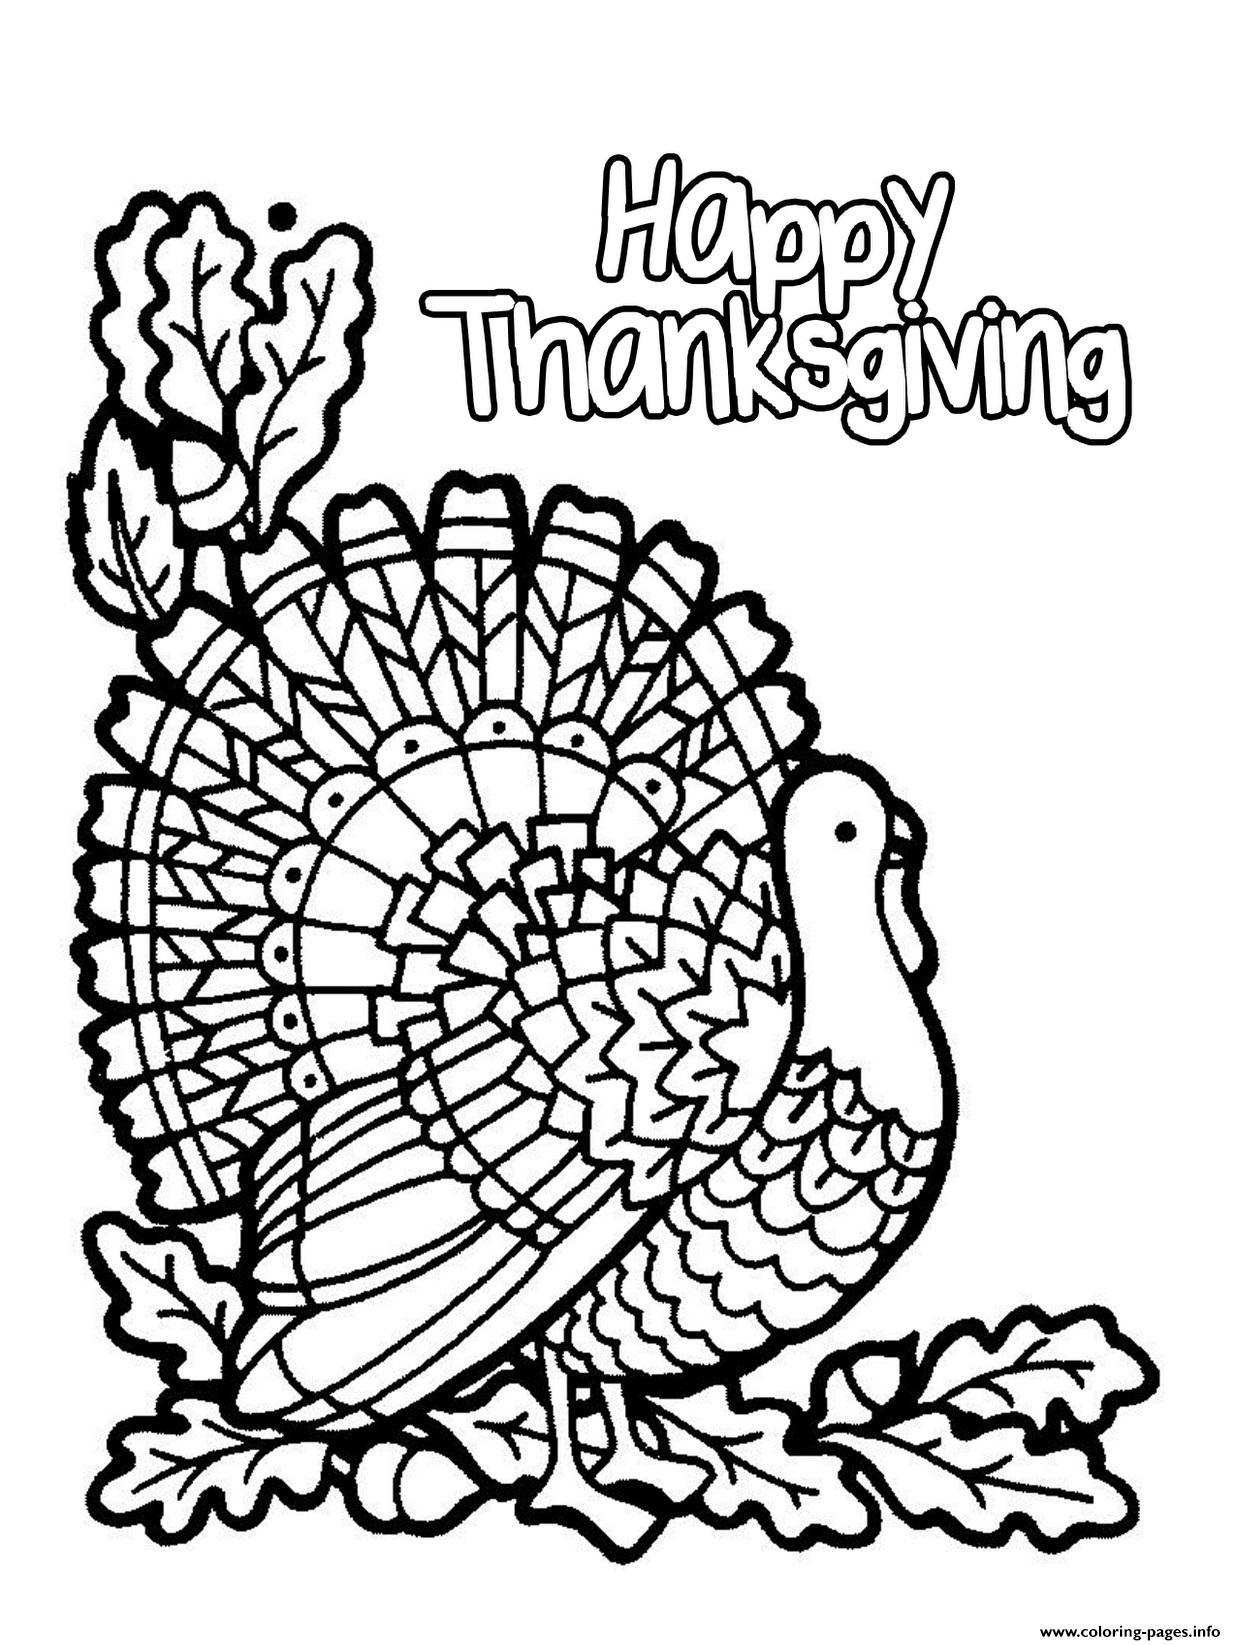 1236x1645 Happy Thanksgiving Turkey Coloring Pages Printable